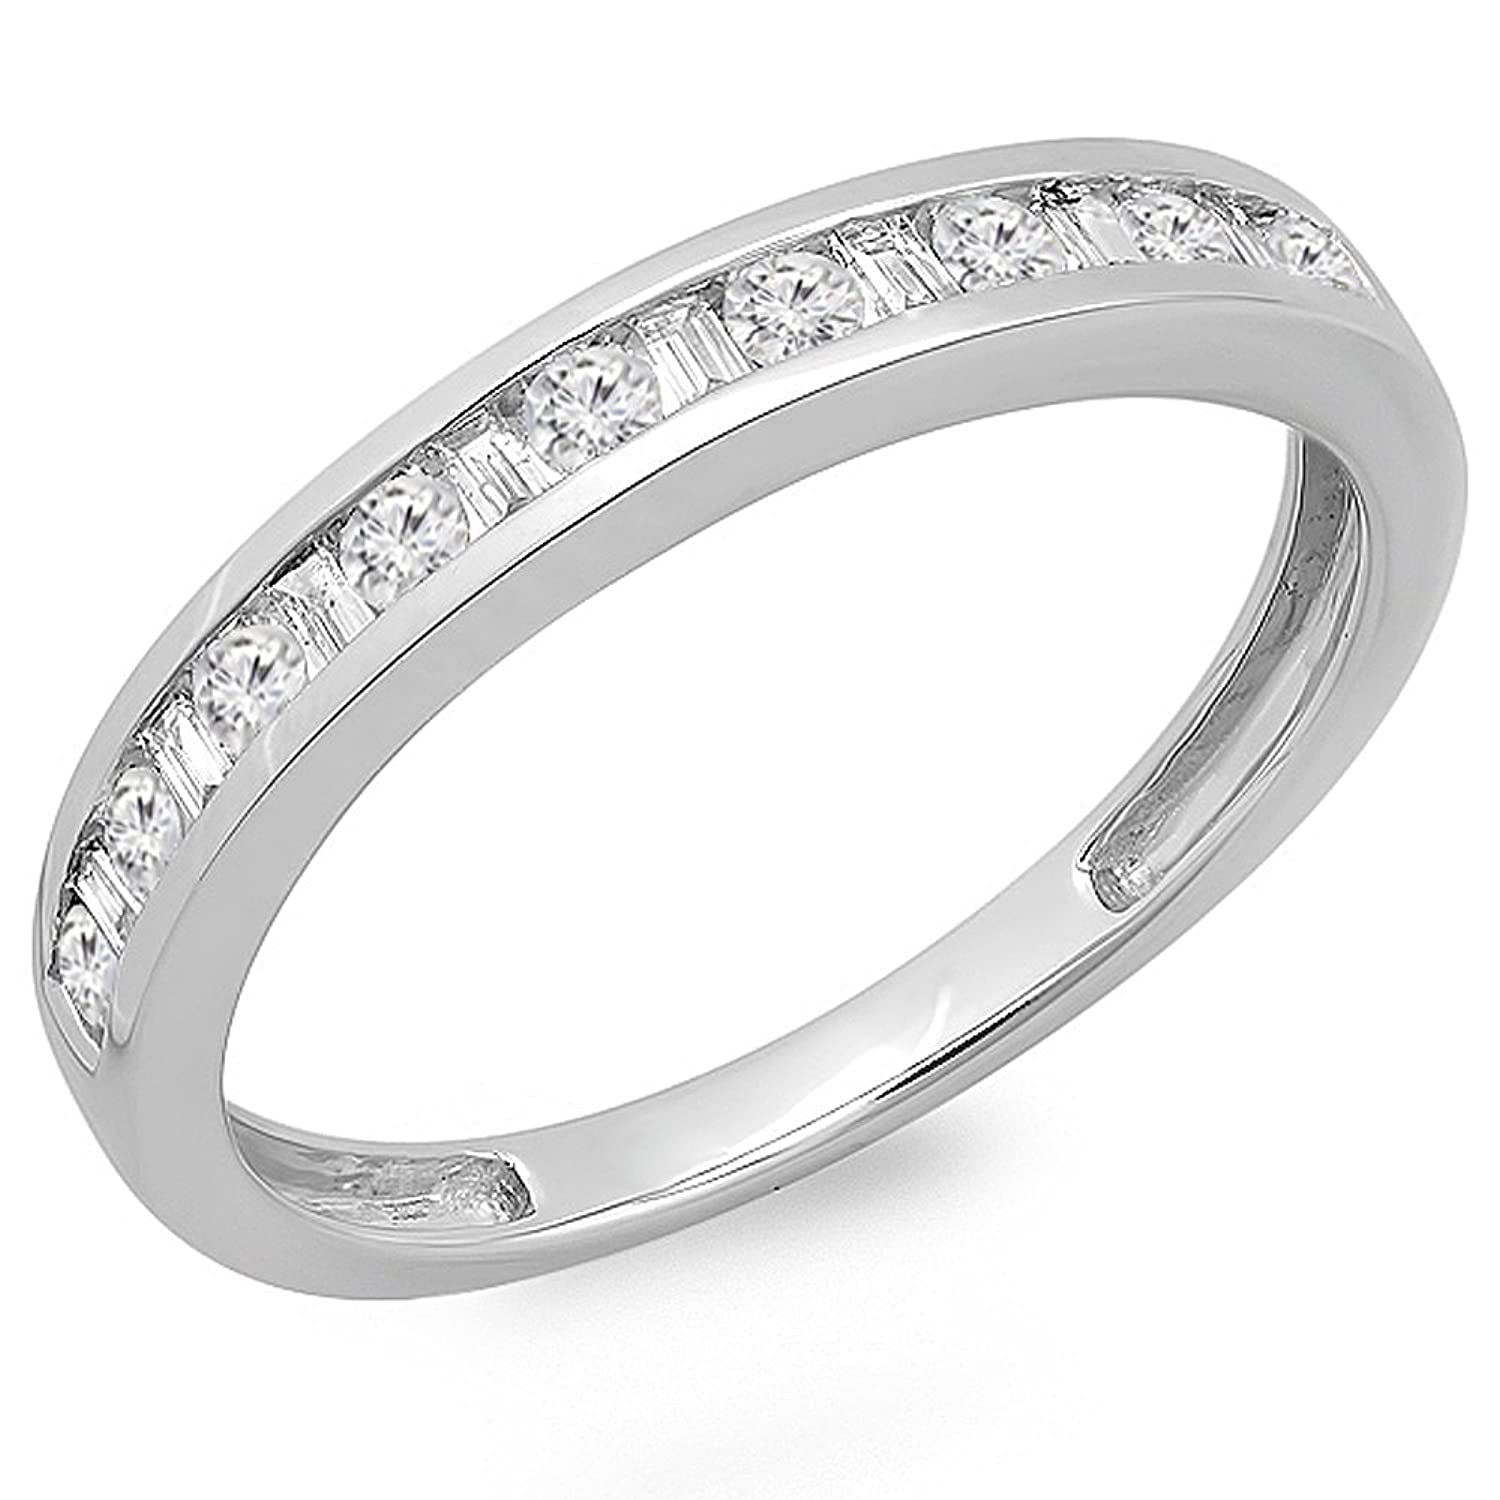 0.40 Carat (ctw) 14K White Gold Round & Baguette Cut Diamond Channel Set Wedding Stackable Band Ring